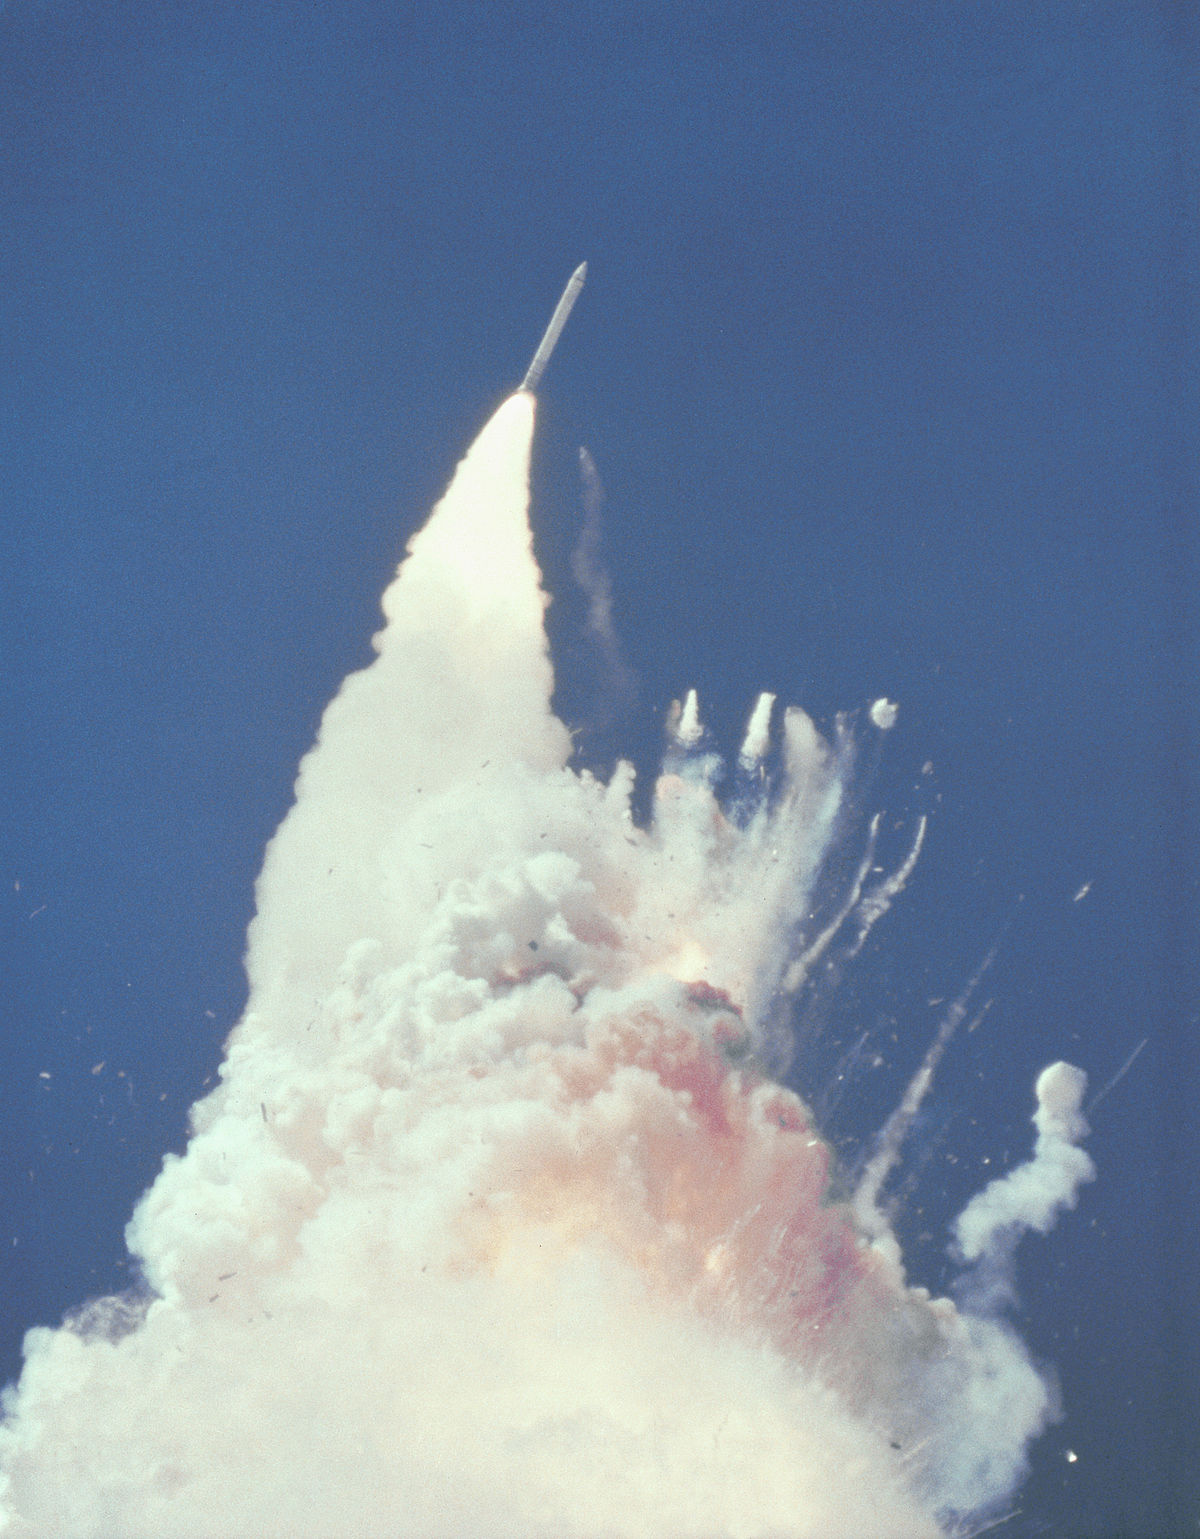 challenger space shuttle underwater - photo #21